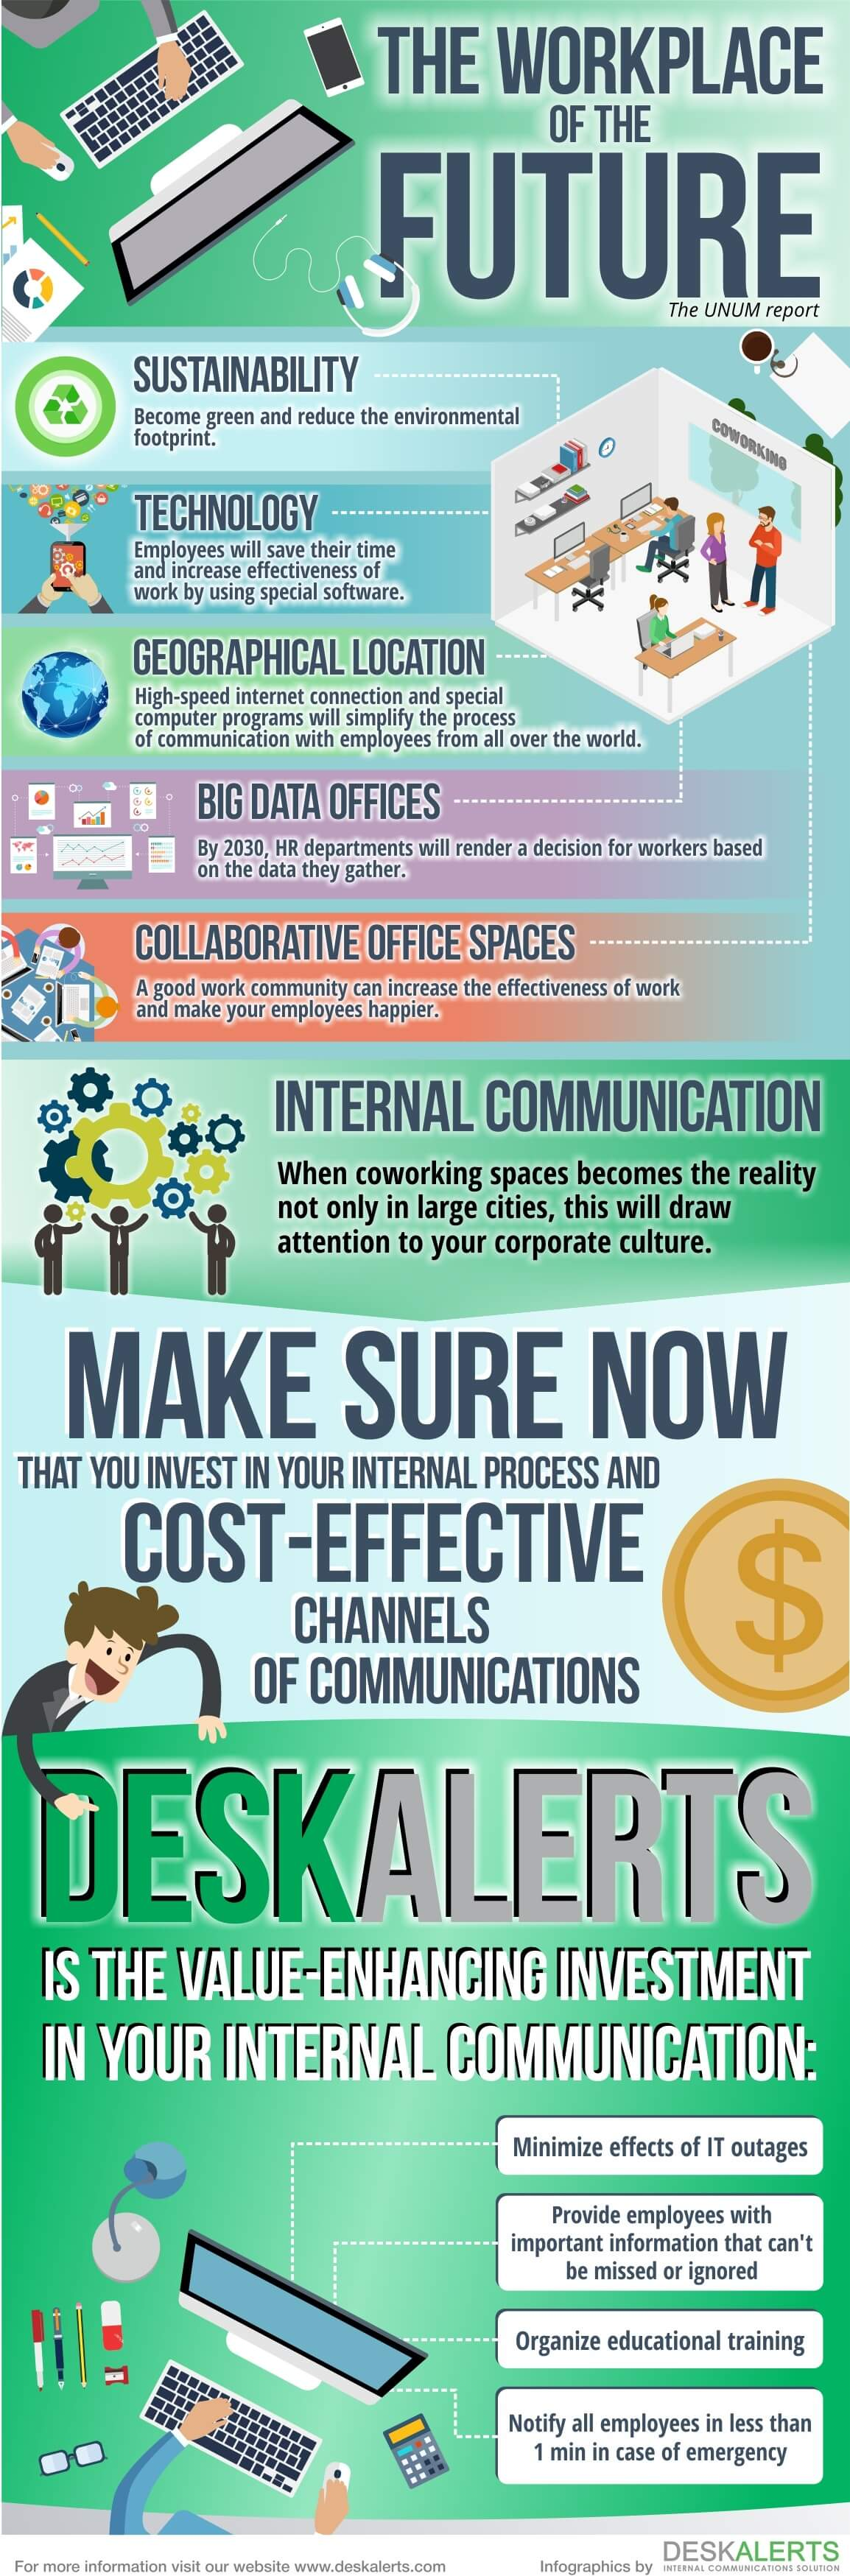 Workplace-future-Infographic-2